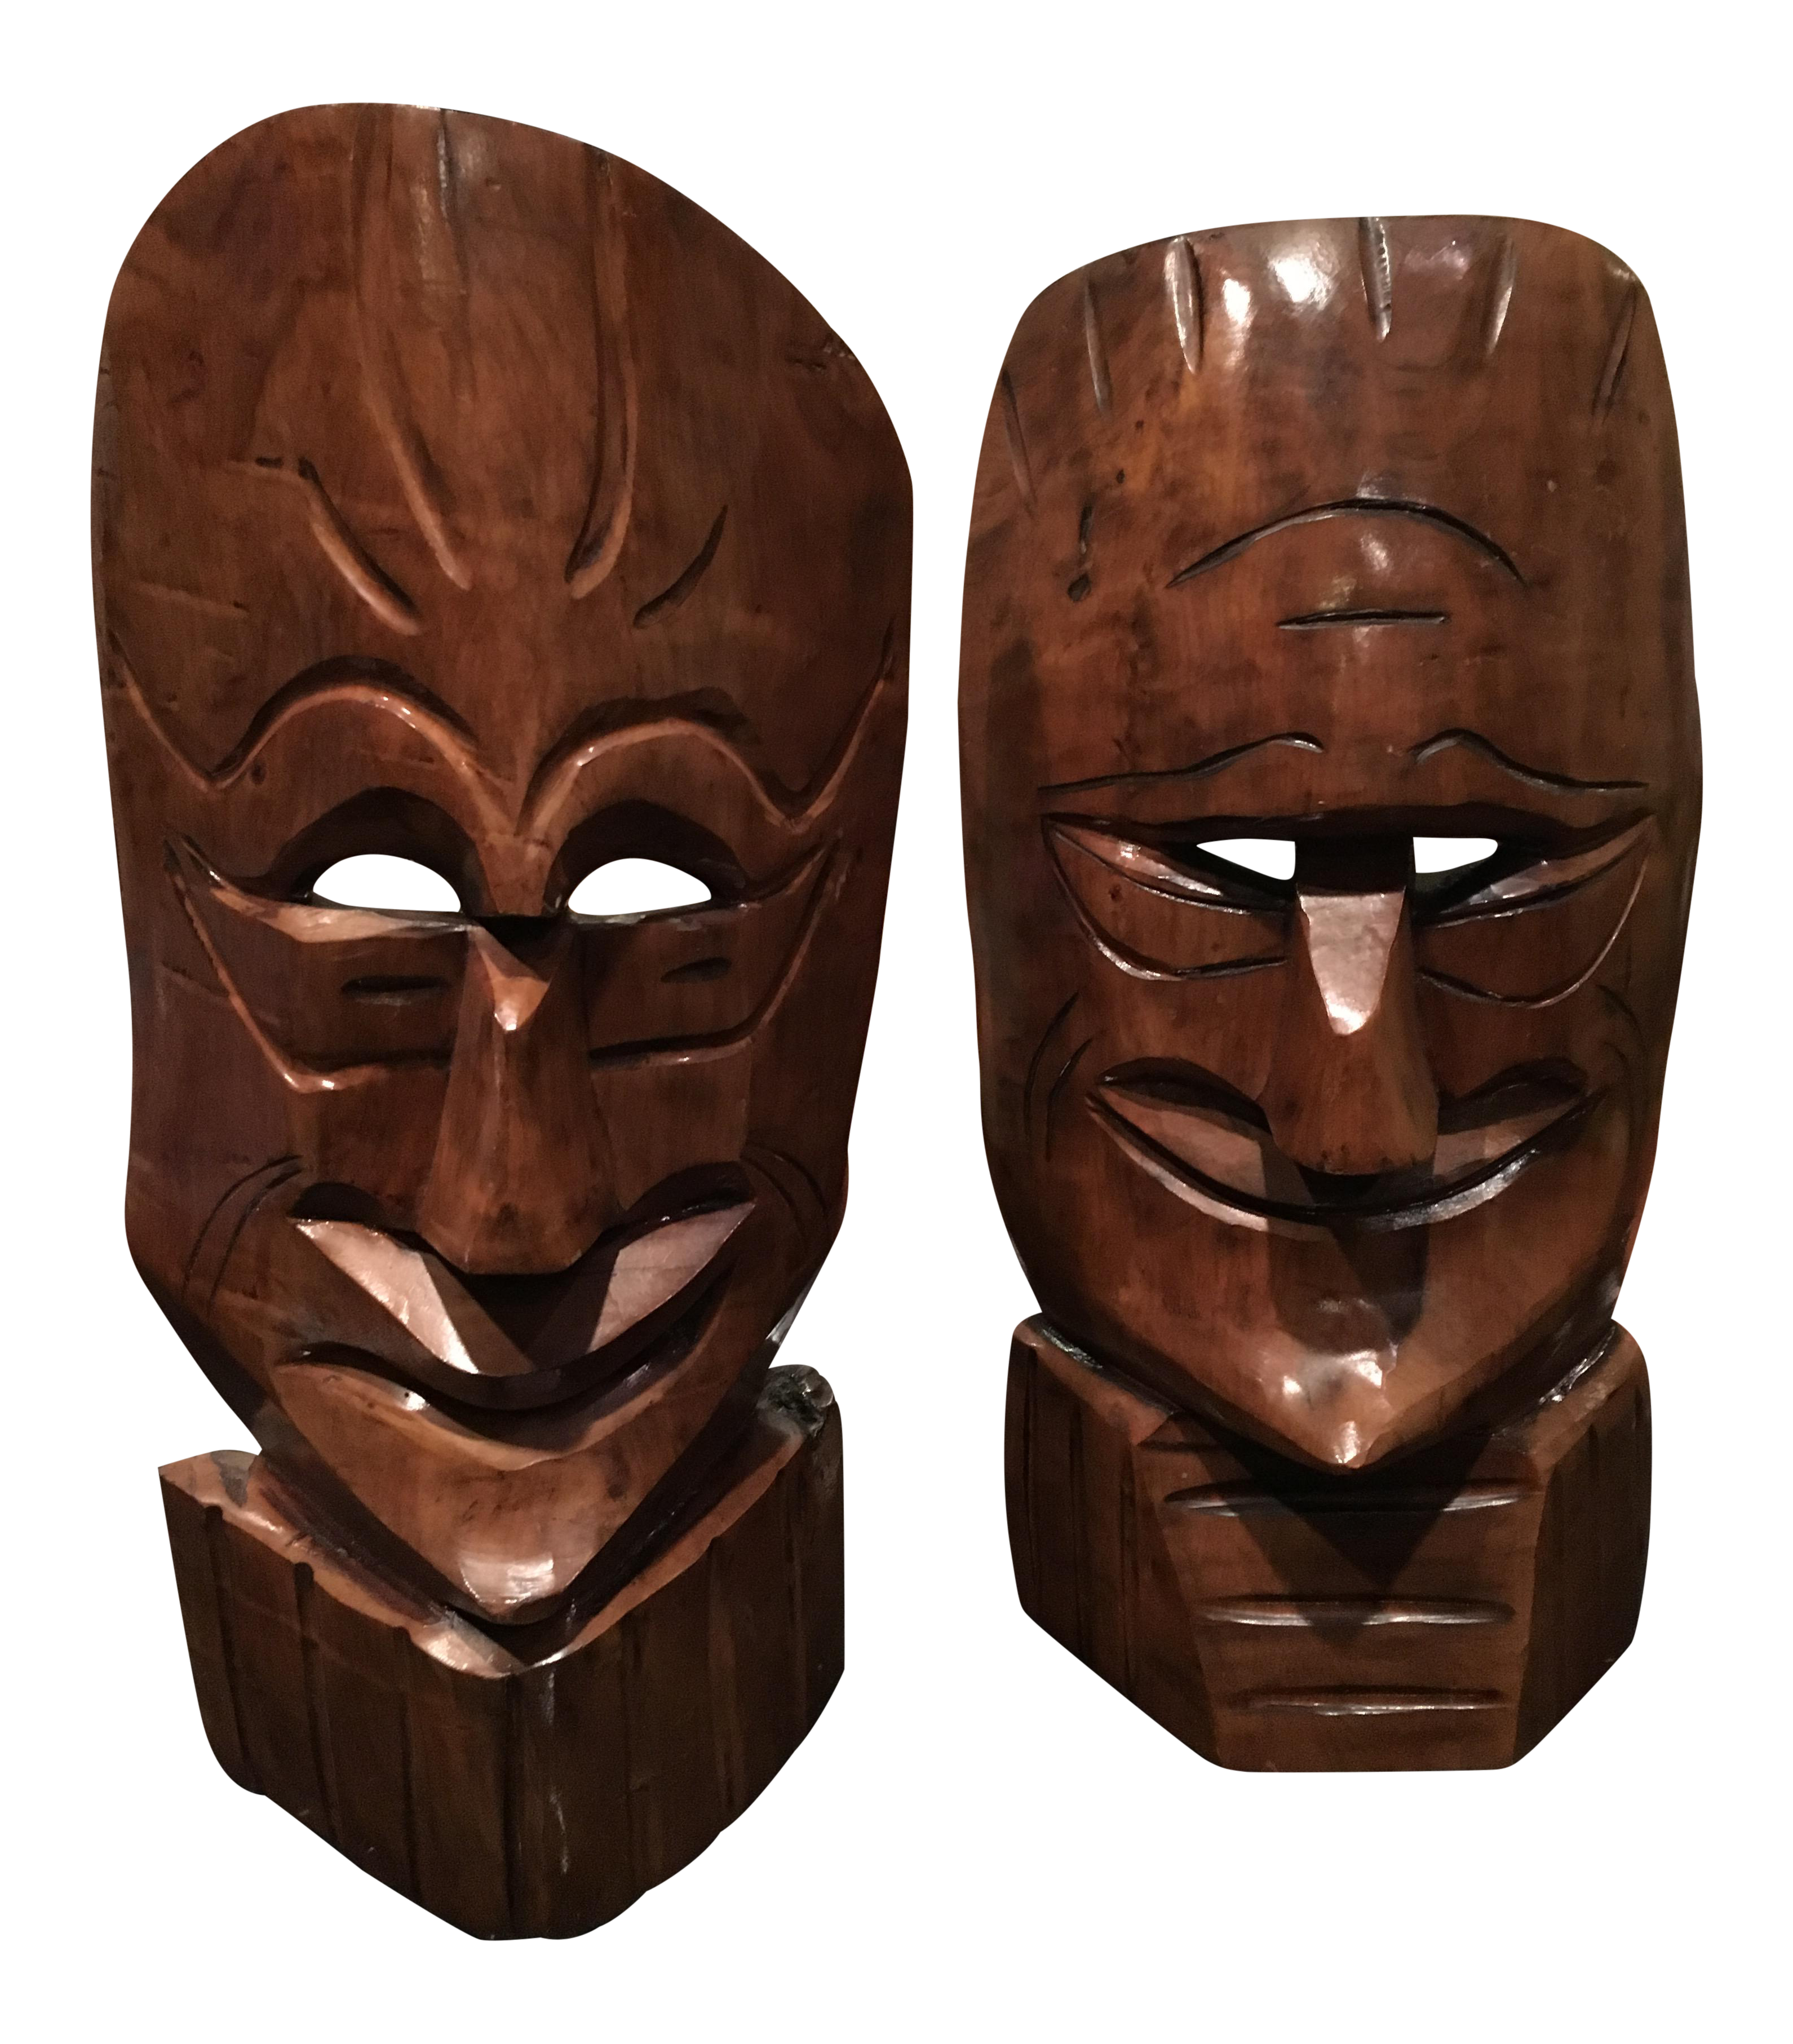 Mid Century Modern Carved Wood Tiki Masks A Pair Chairish